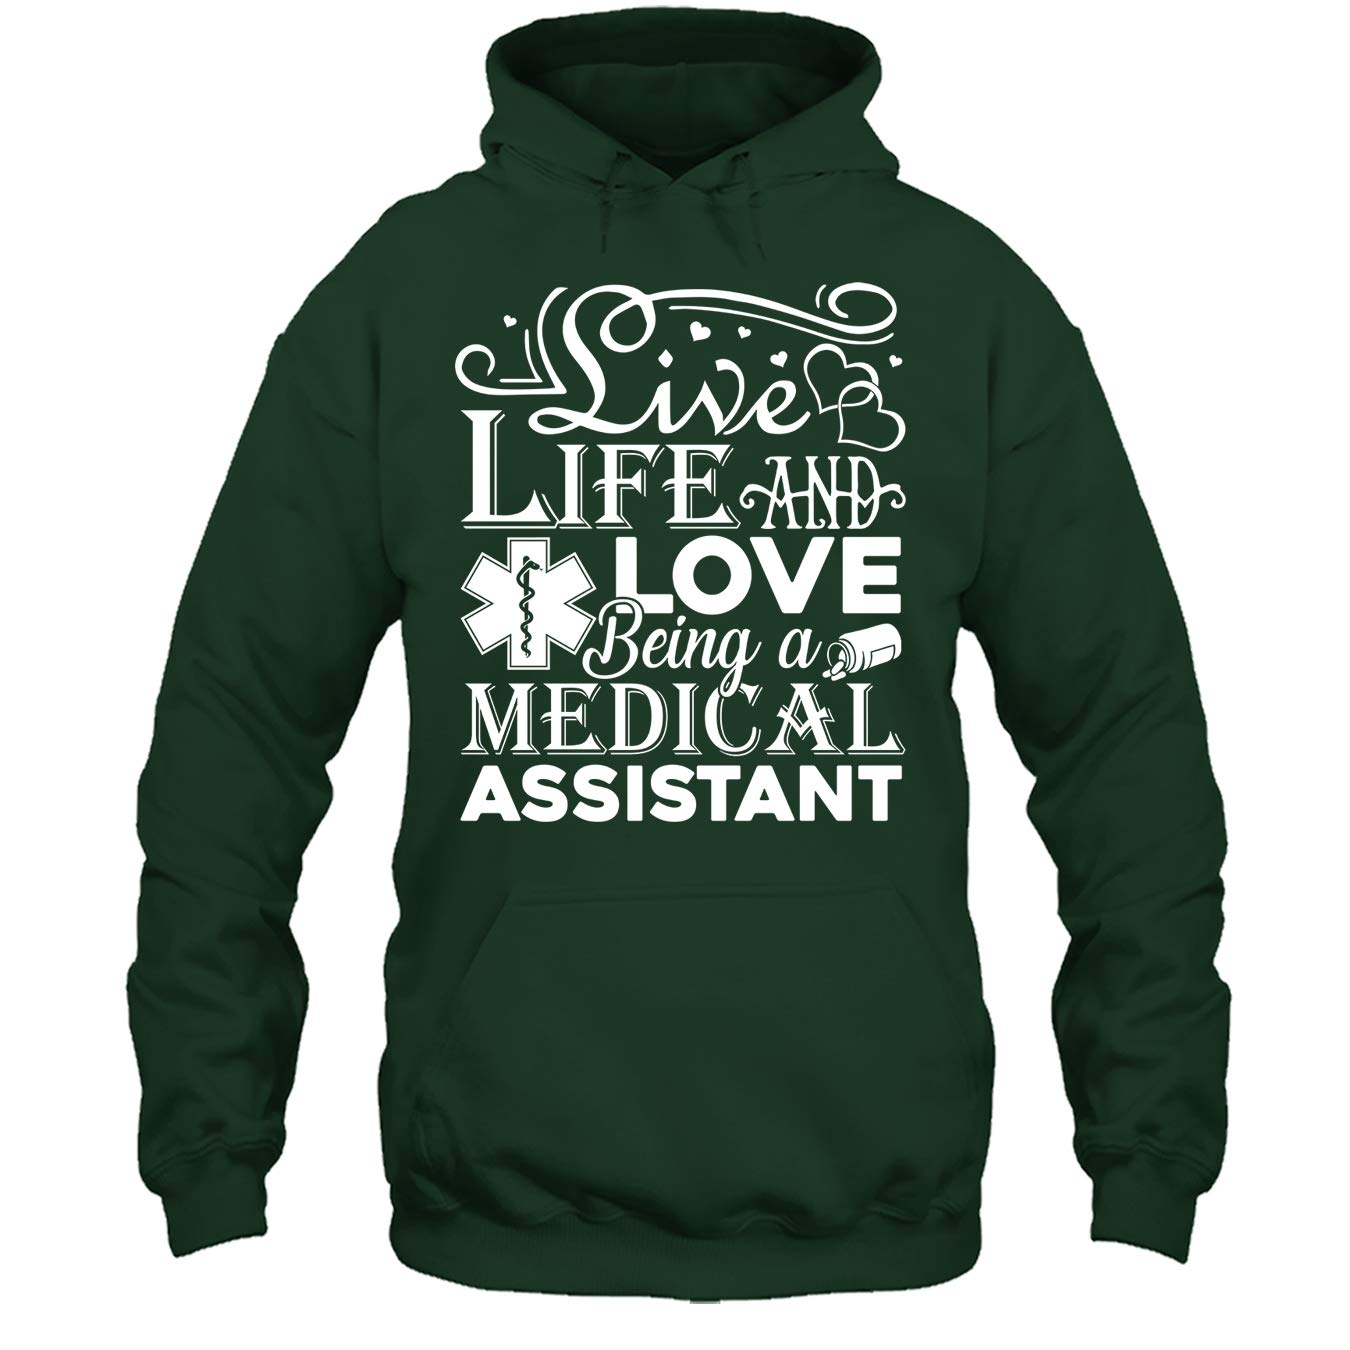 Love Being A Medical Assistant Tshirt Medical Assistant Cool Tee Shirt